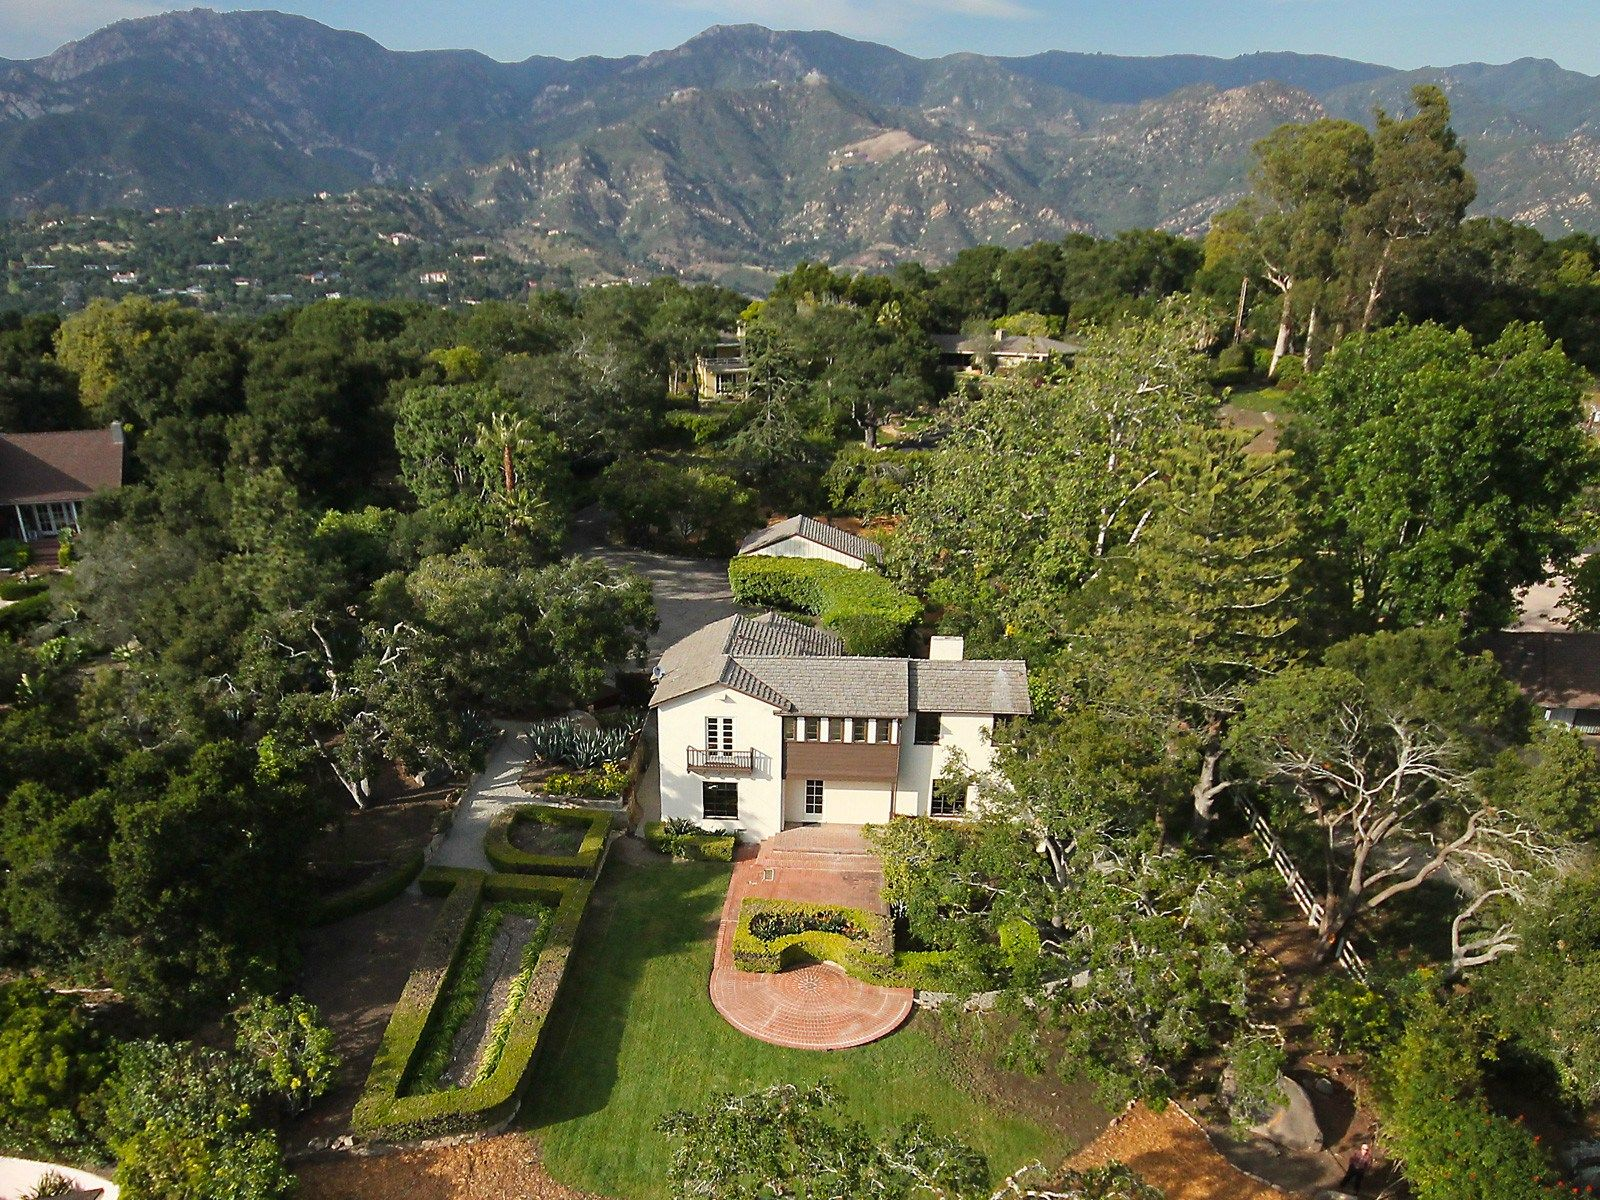 Riviera Country Villa                   , Santa Barbara CA Single Family Home - Santa Barbara Real Estate